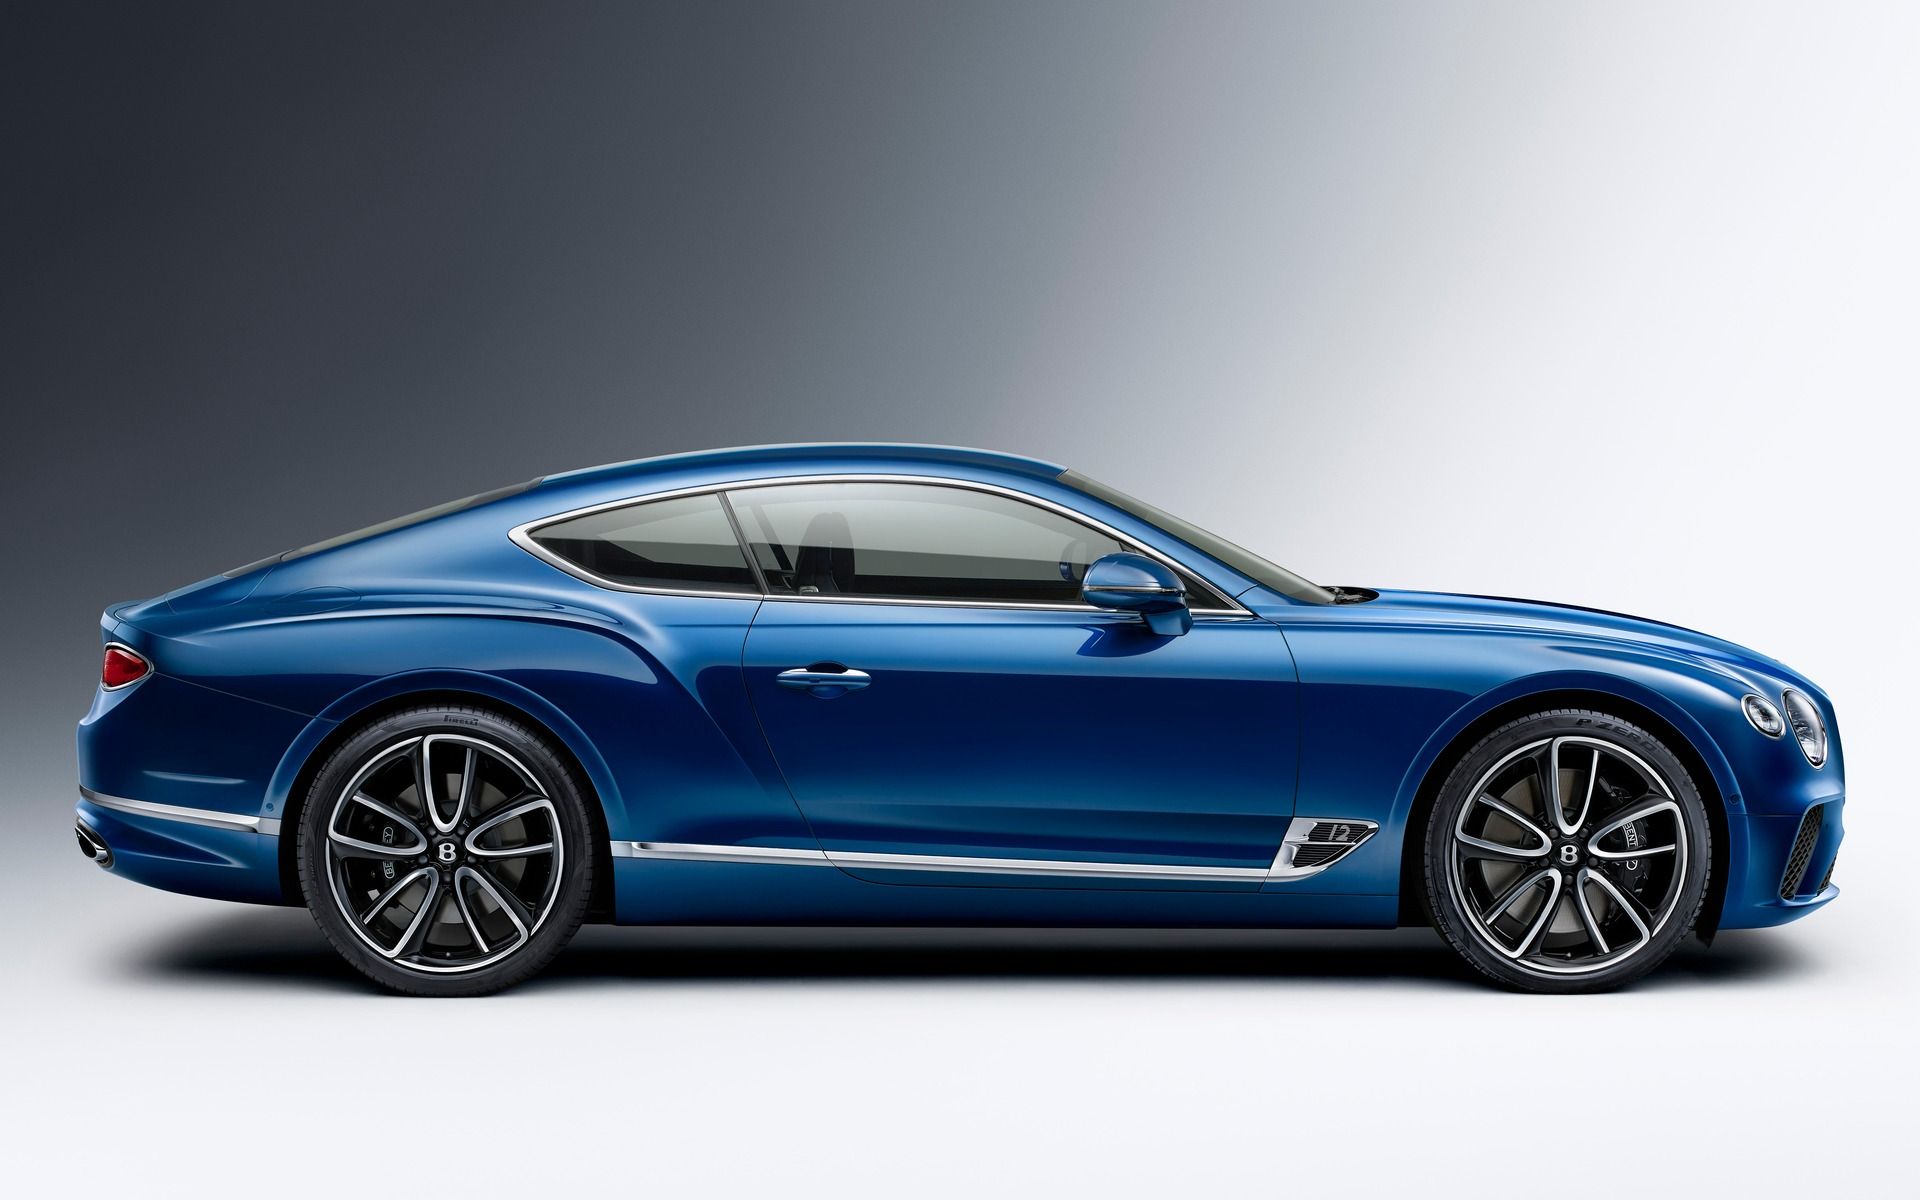 Auto Reviews 2018 >> 2018 Bentley Continental GT Revealed - 29/36